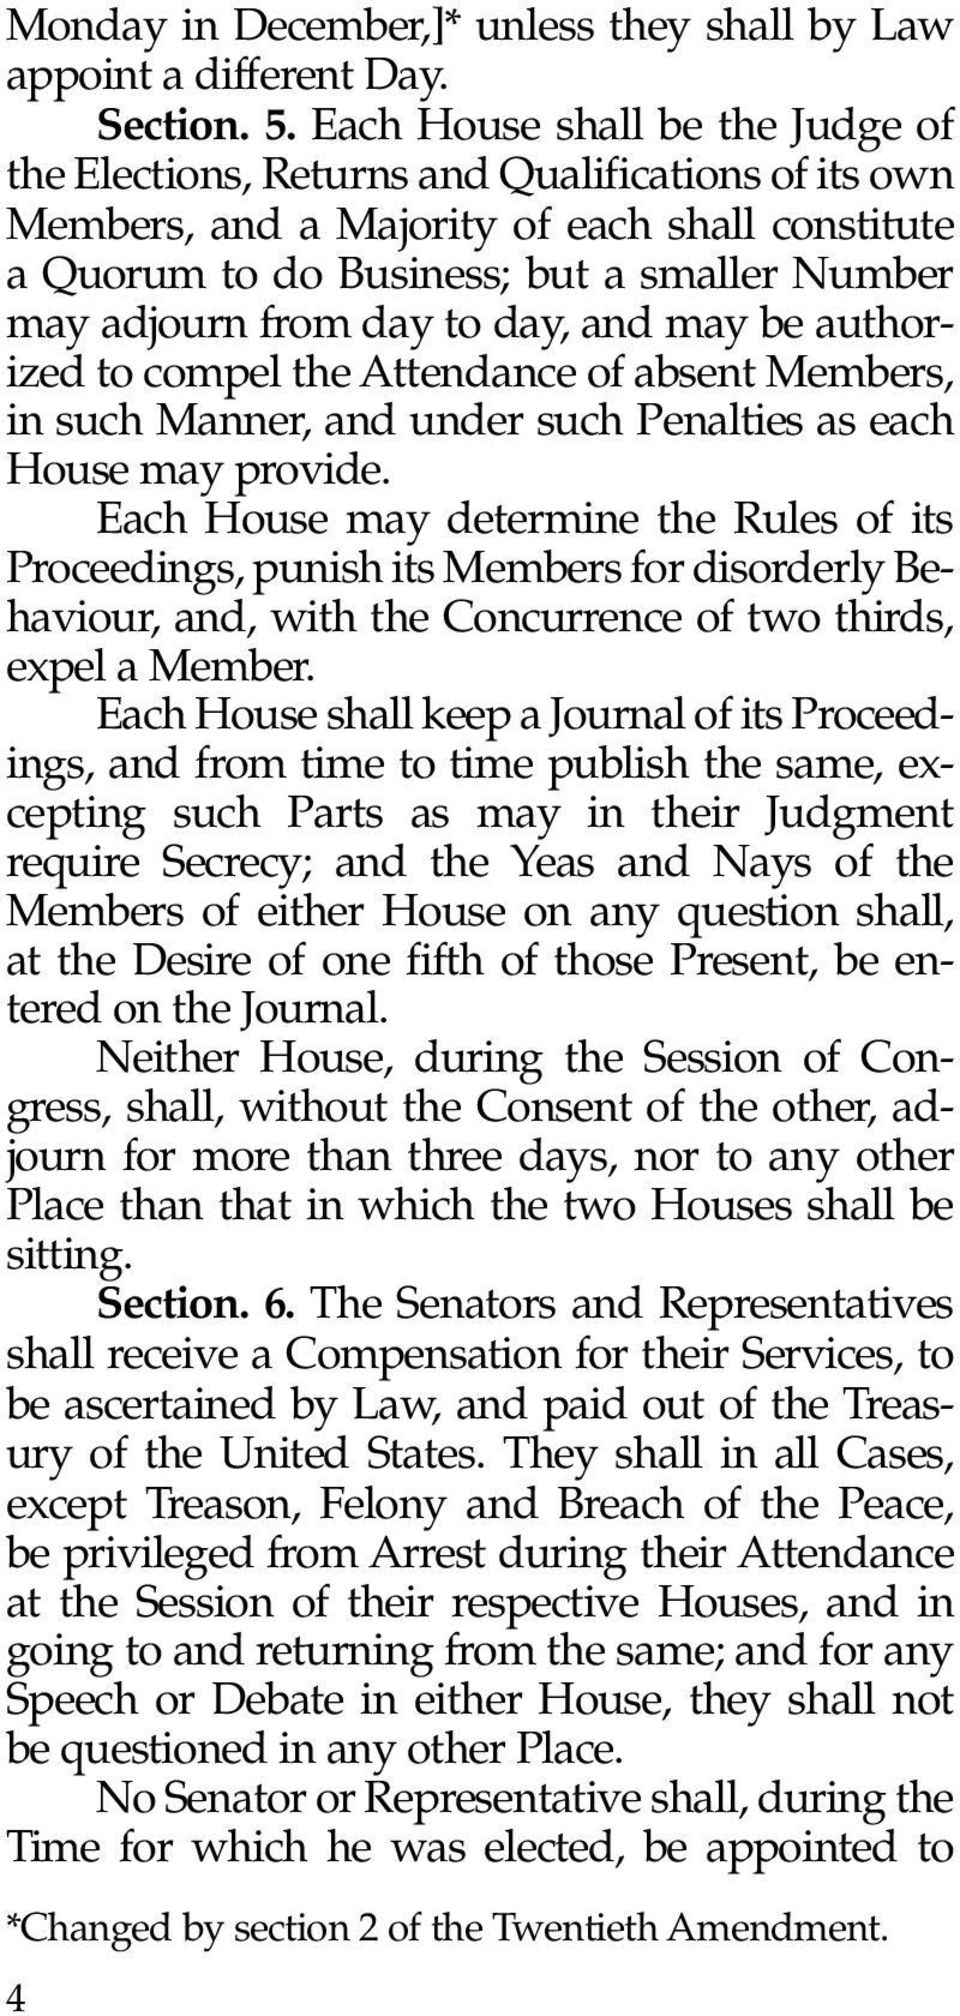 day to day, and may be authorized to compel the Attendance of absent Members, in such Manner, and under such Penalties as each House may provide.